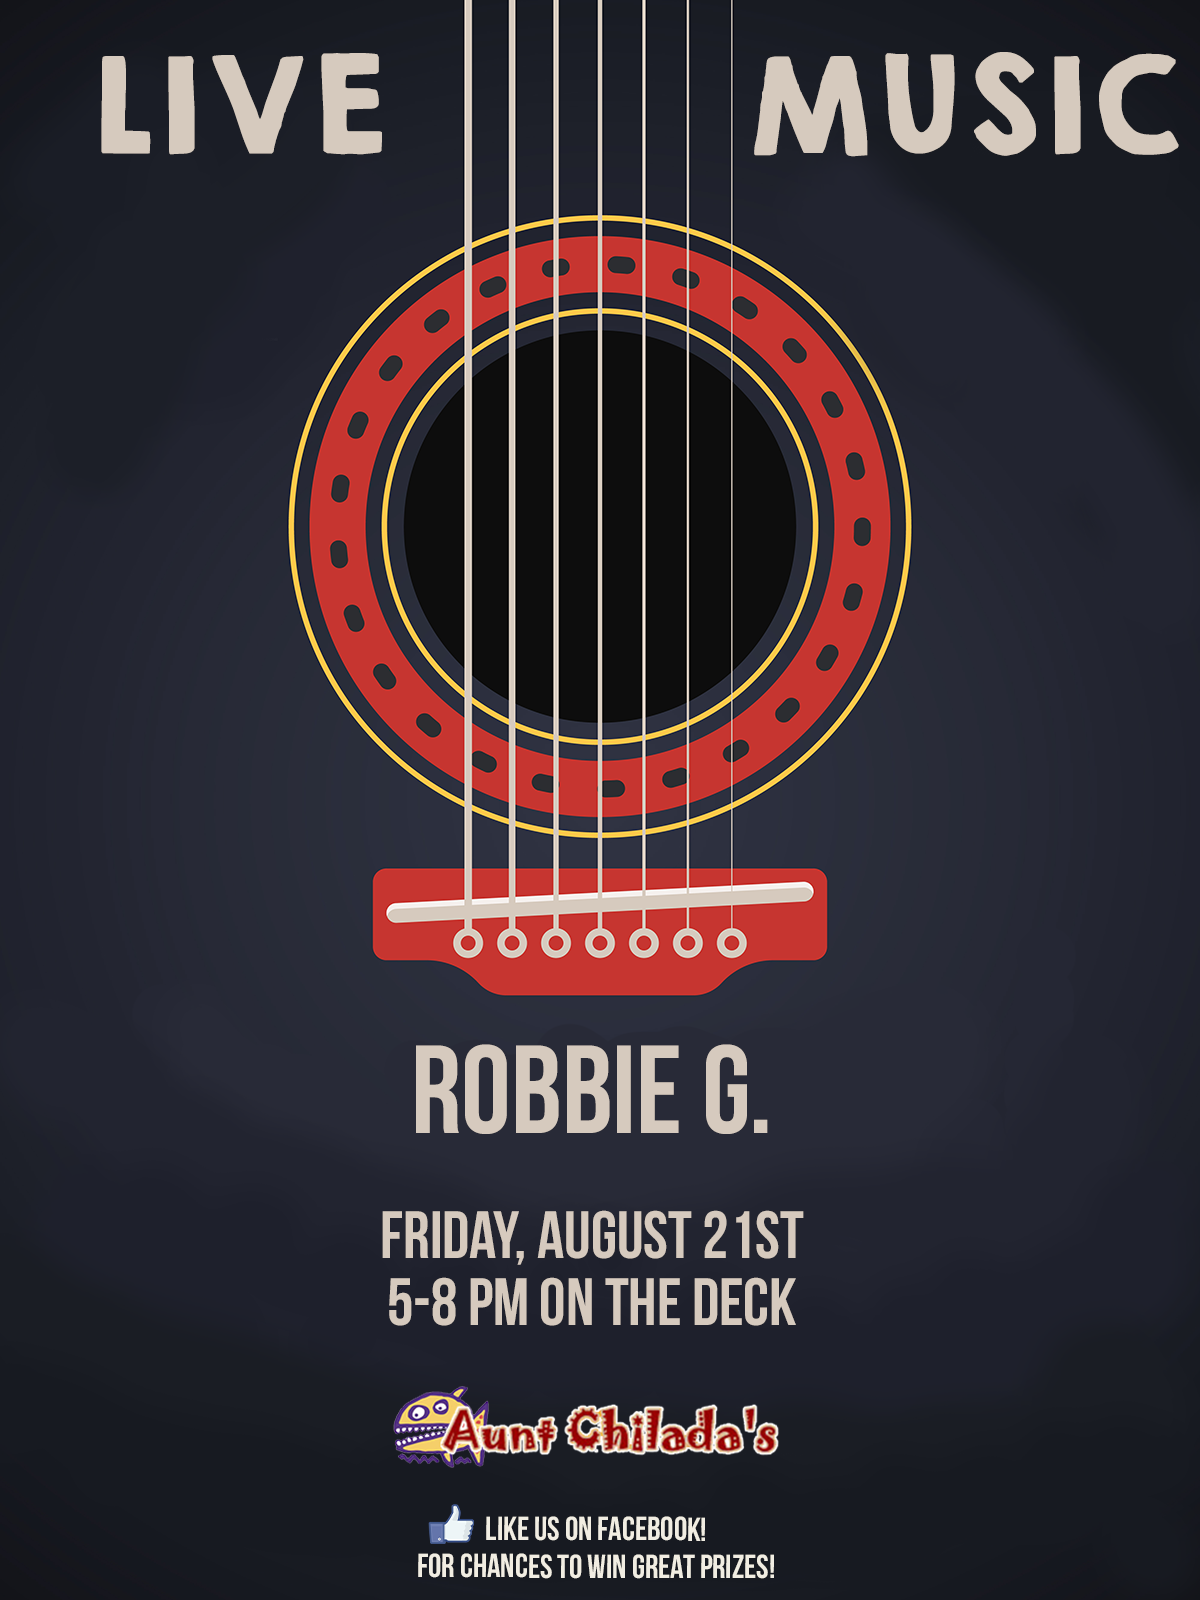 Live music Robbie G. Friday, August 21st 5-8 pm on the deck. aunt chilada's. like us on facebook! for chances to win great prizes!